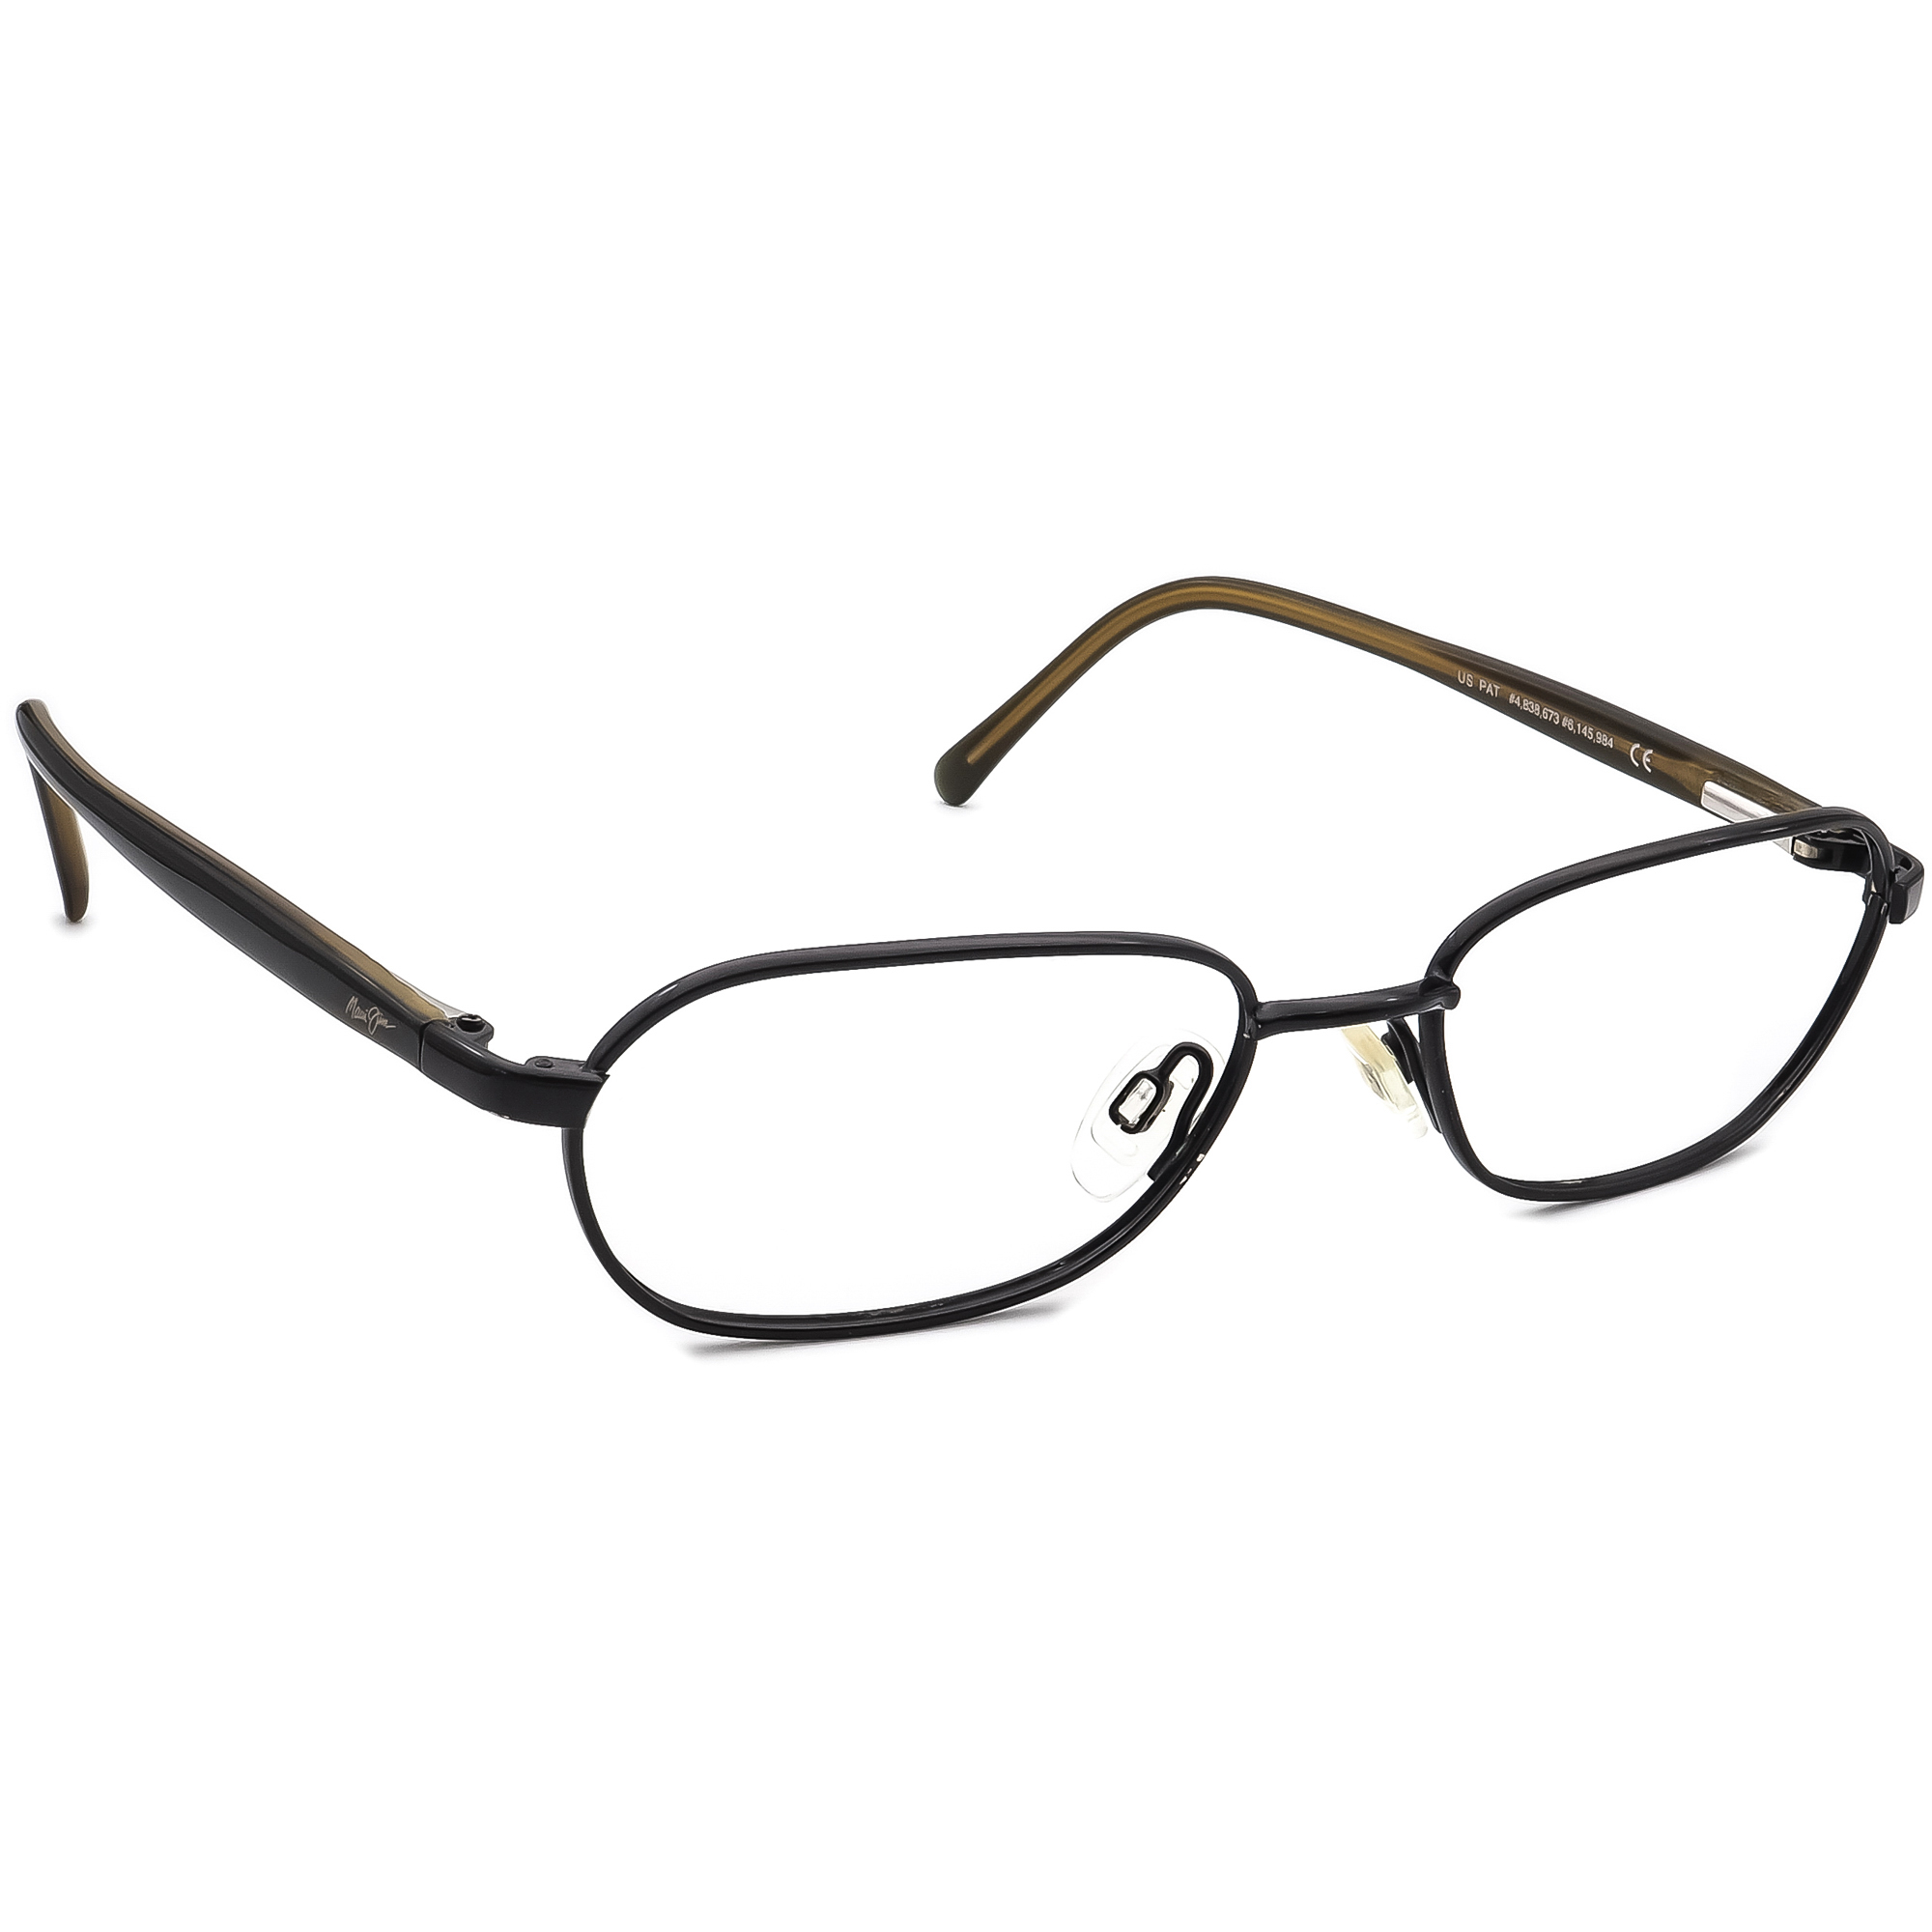 Maui Jim MJ-133-02 Eyeglasses